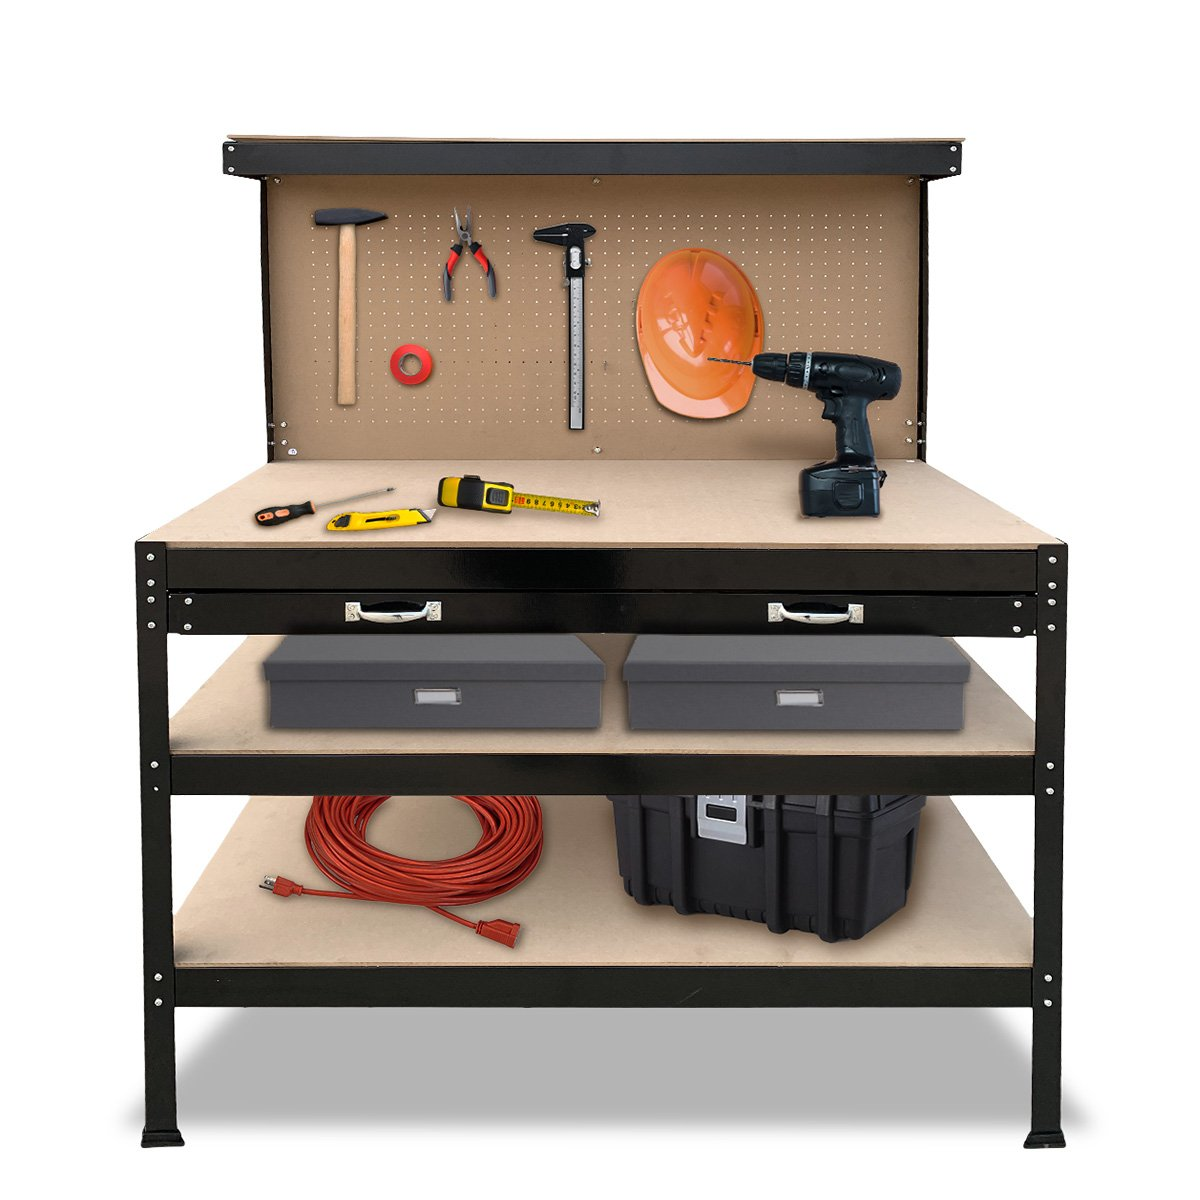 3-Layered Work Bench Garage Storage Table Tool Shop Shelf